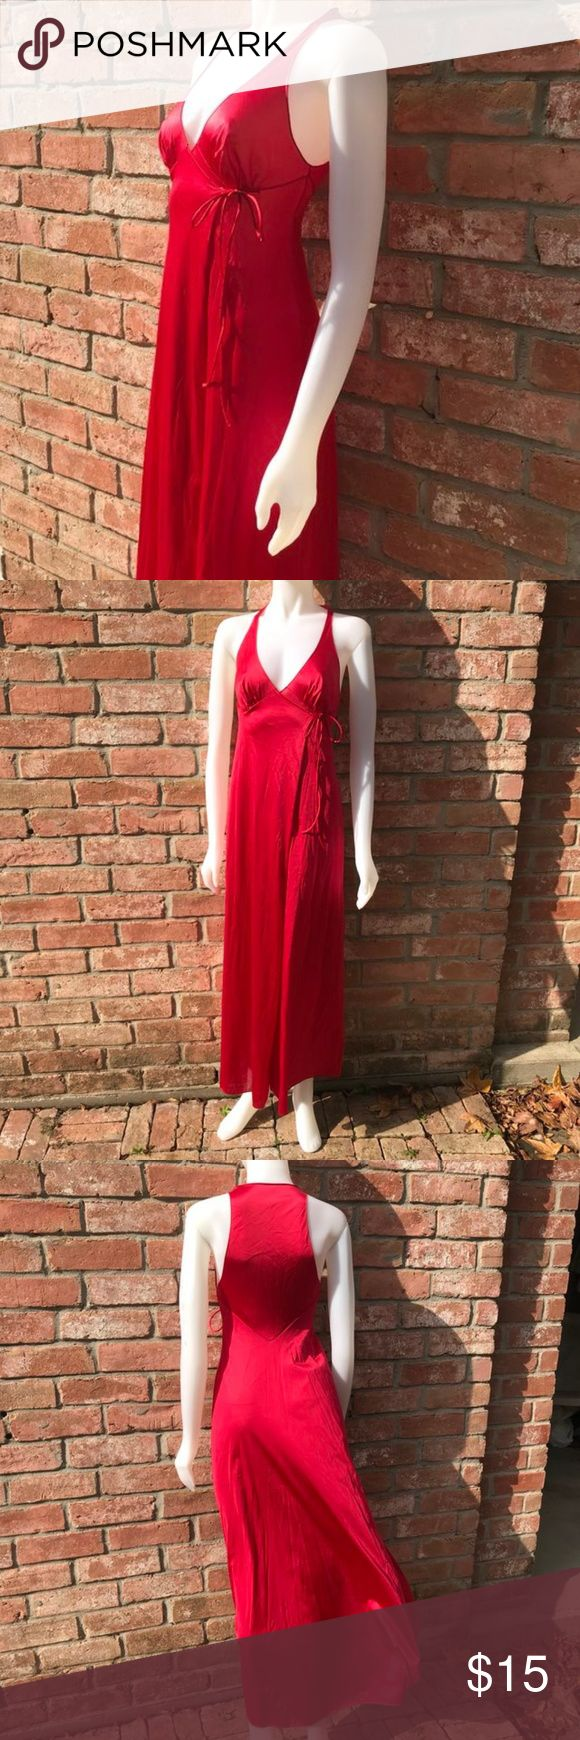 VANITY FAIR VINTAGE LINGERIE GOWN SIZE 32 All nylon made in the USA vintage retro nightgown open sized and opens all the way up with a small snap in the front under bust opens from the front toes to the side deep red in color in good vintage condition. Vanity Fair Intimates & Sleepwear #vintagelingerie